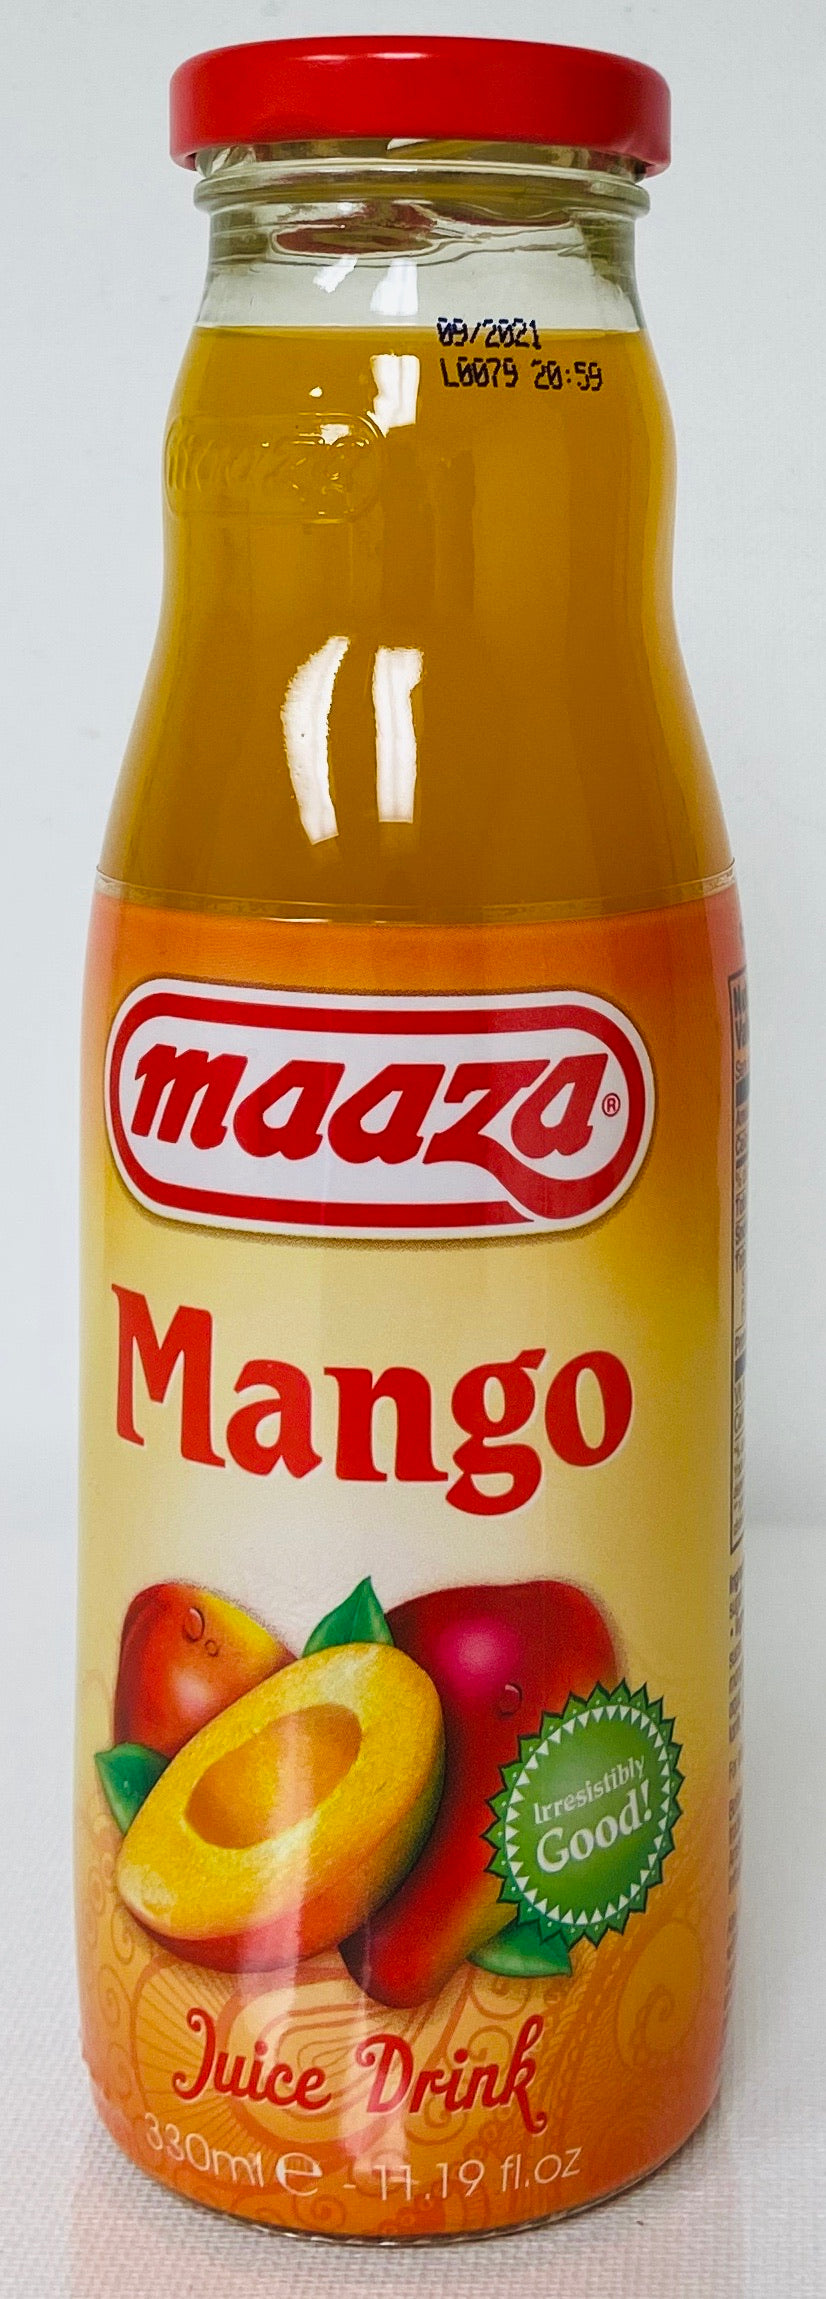 Maaza Mango Drink (330 ml)